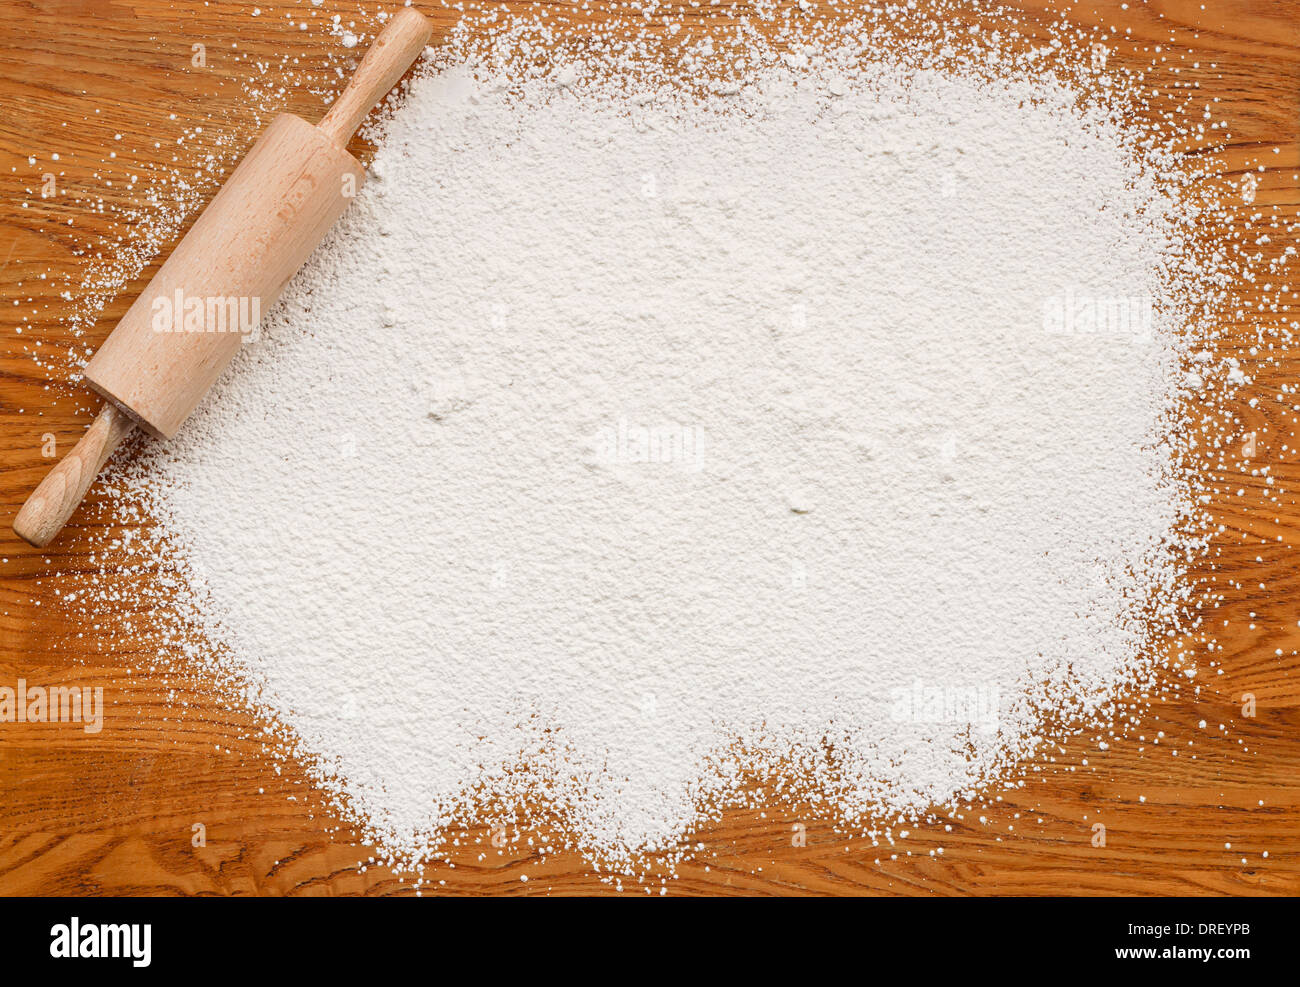 White flour on a wooden table creating a text area for insertion of your custom message or recipe - Stock Image